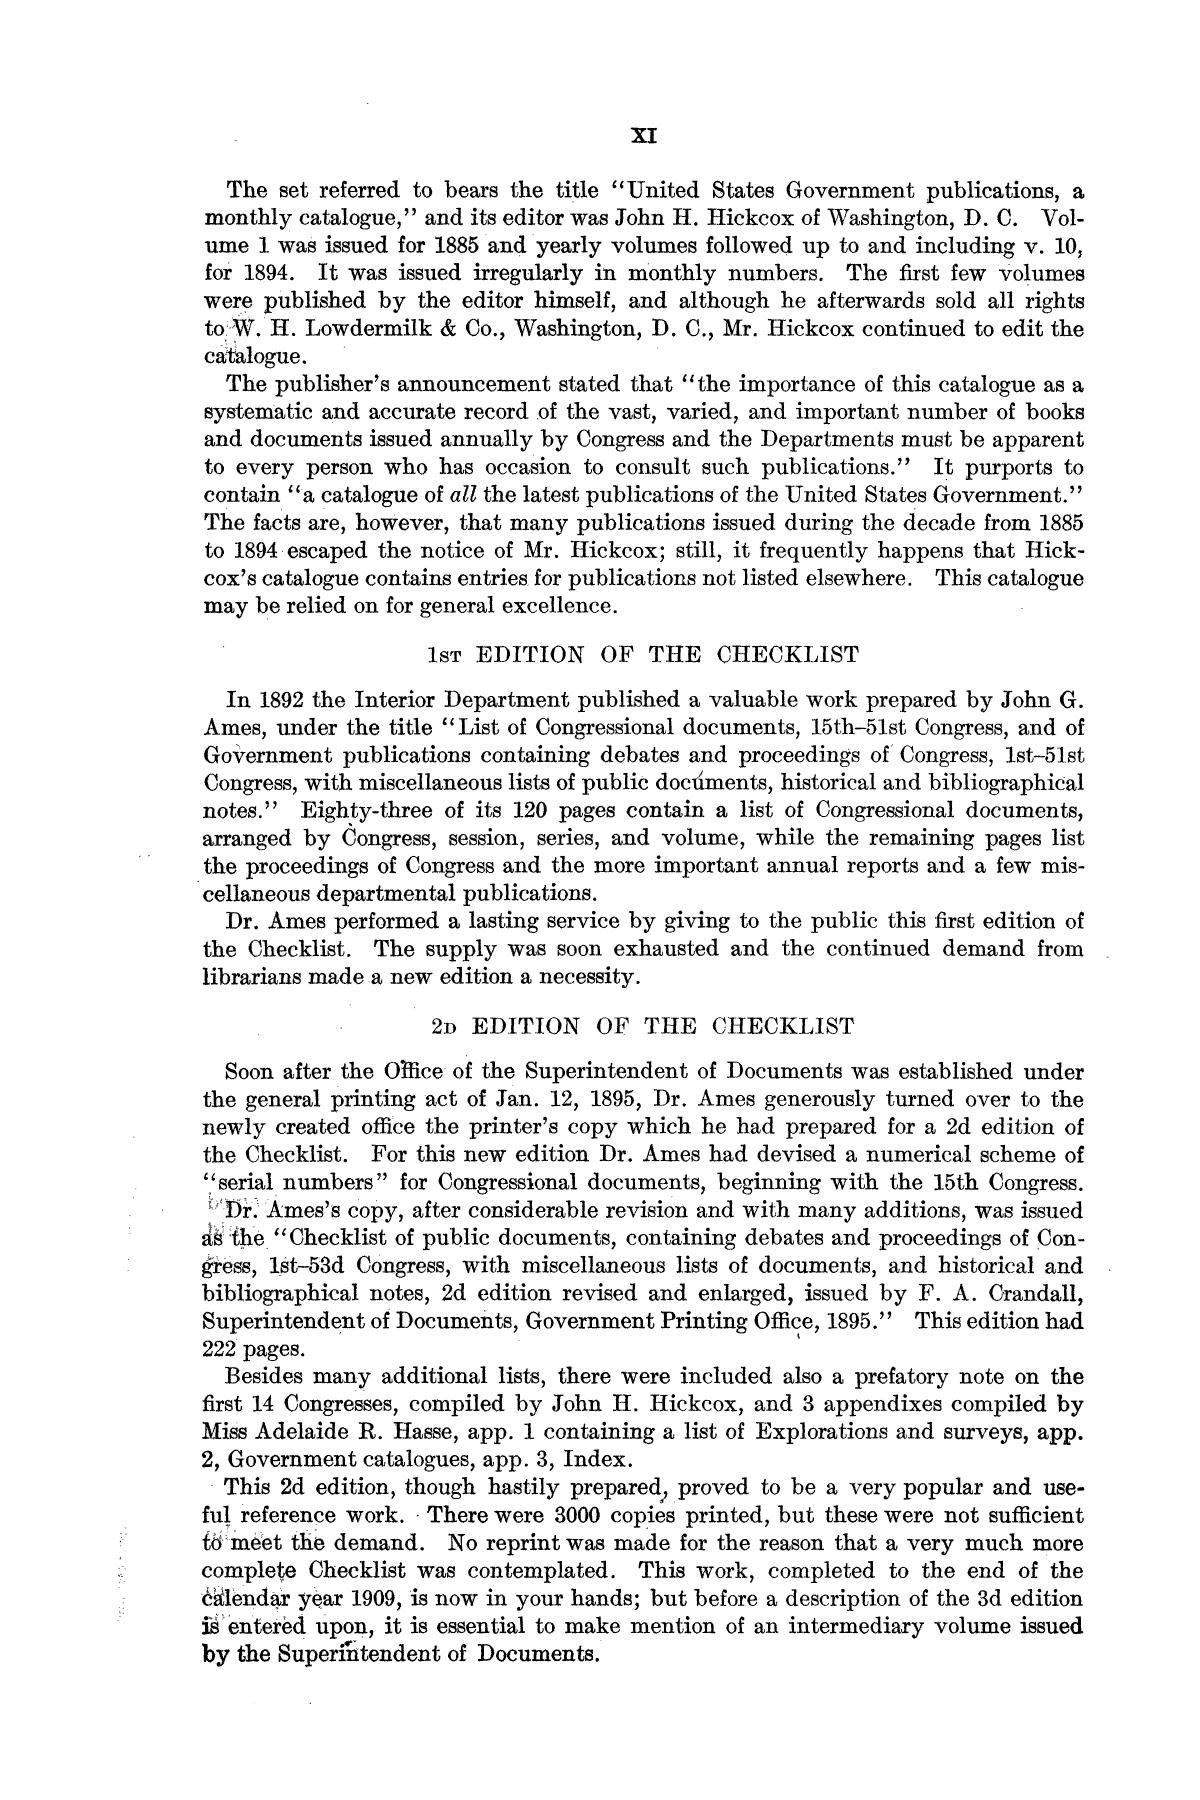 Checklist of United States Public Documents, 1789-1909, Third Edition Revised and Enlarged, Volume 1, Lists of Congressional and Departmental Publications                                                                                                      XI